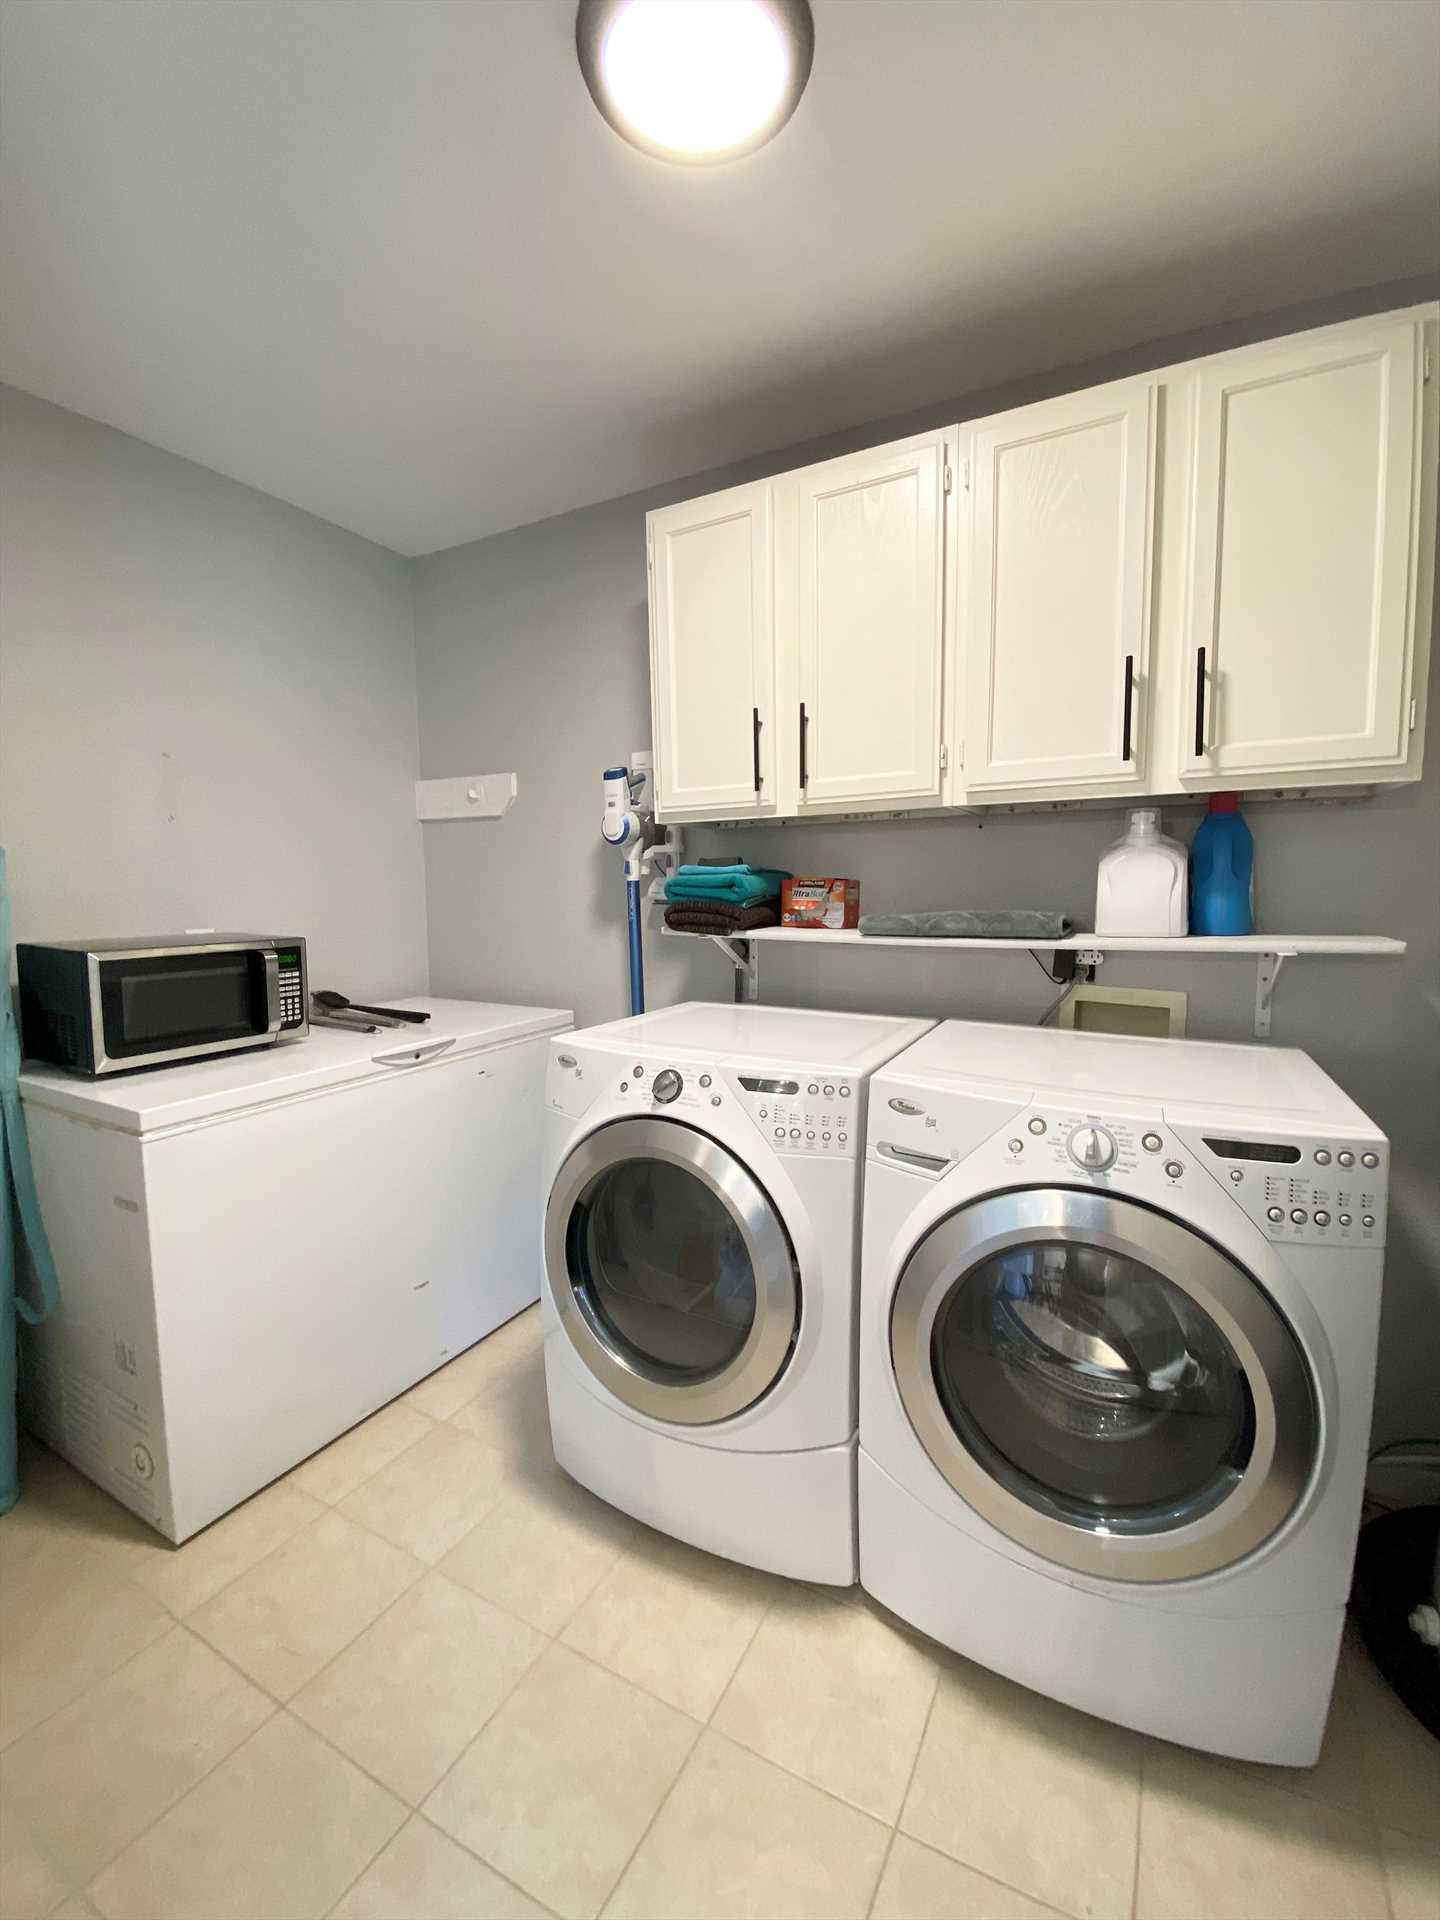 With a convenient utility room, you won't have to worry about laundry piling up!